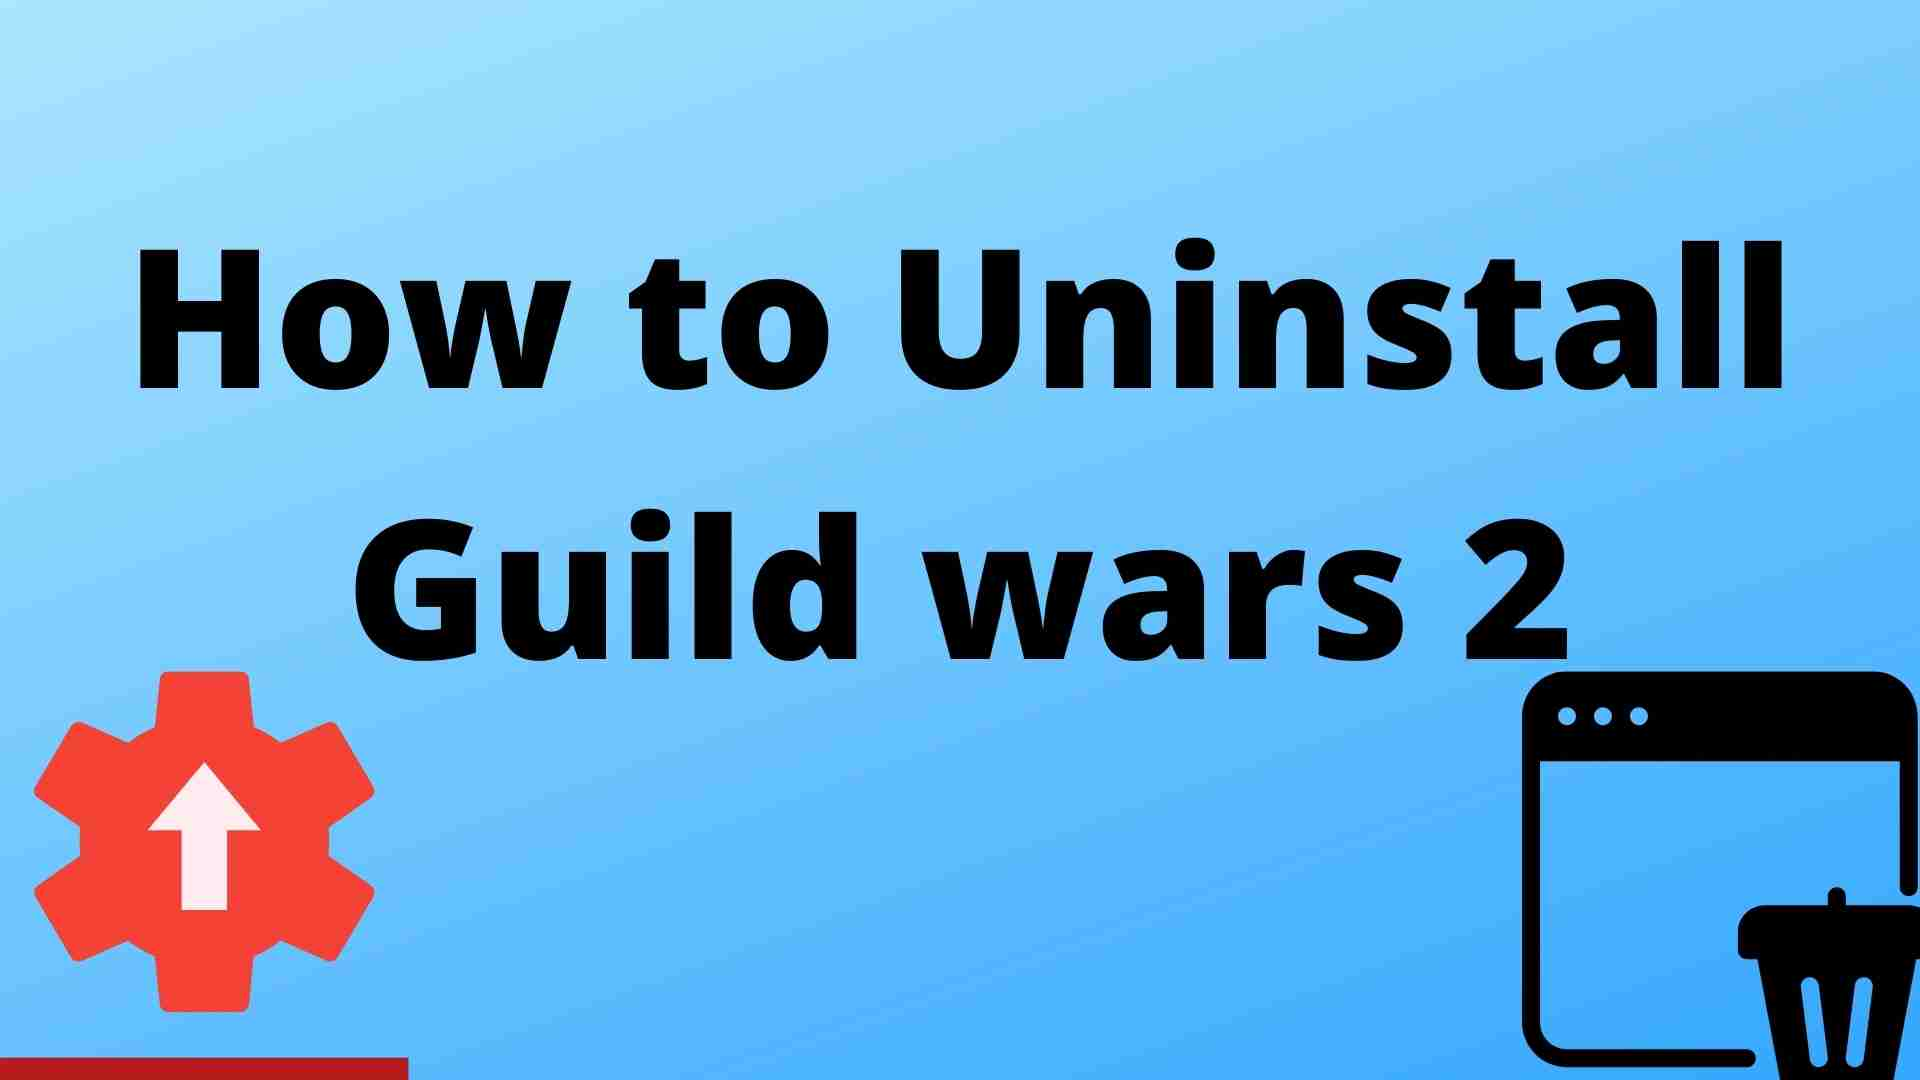 How to uninstall Guild wars 2